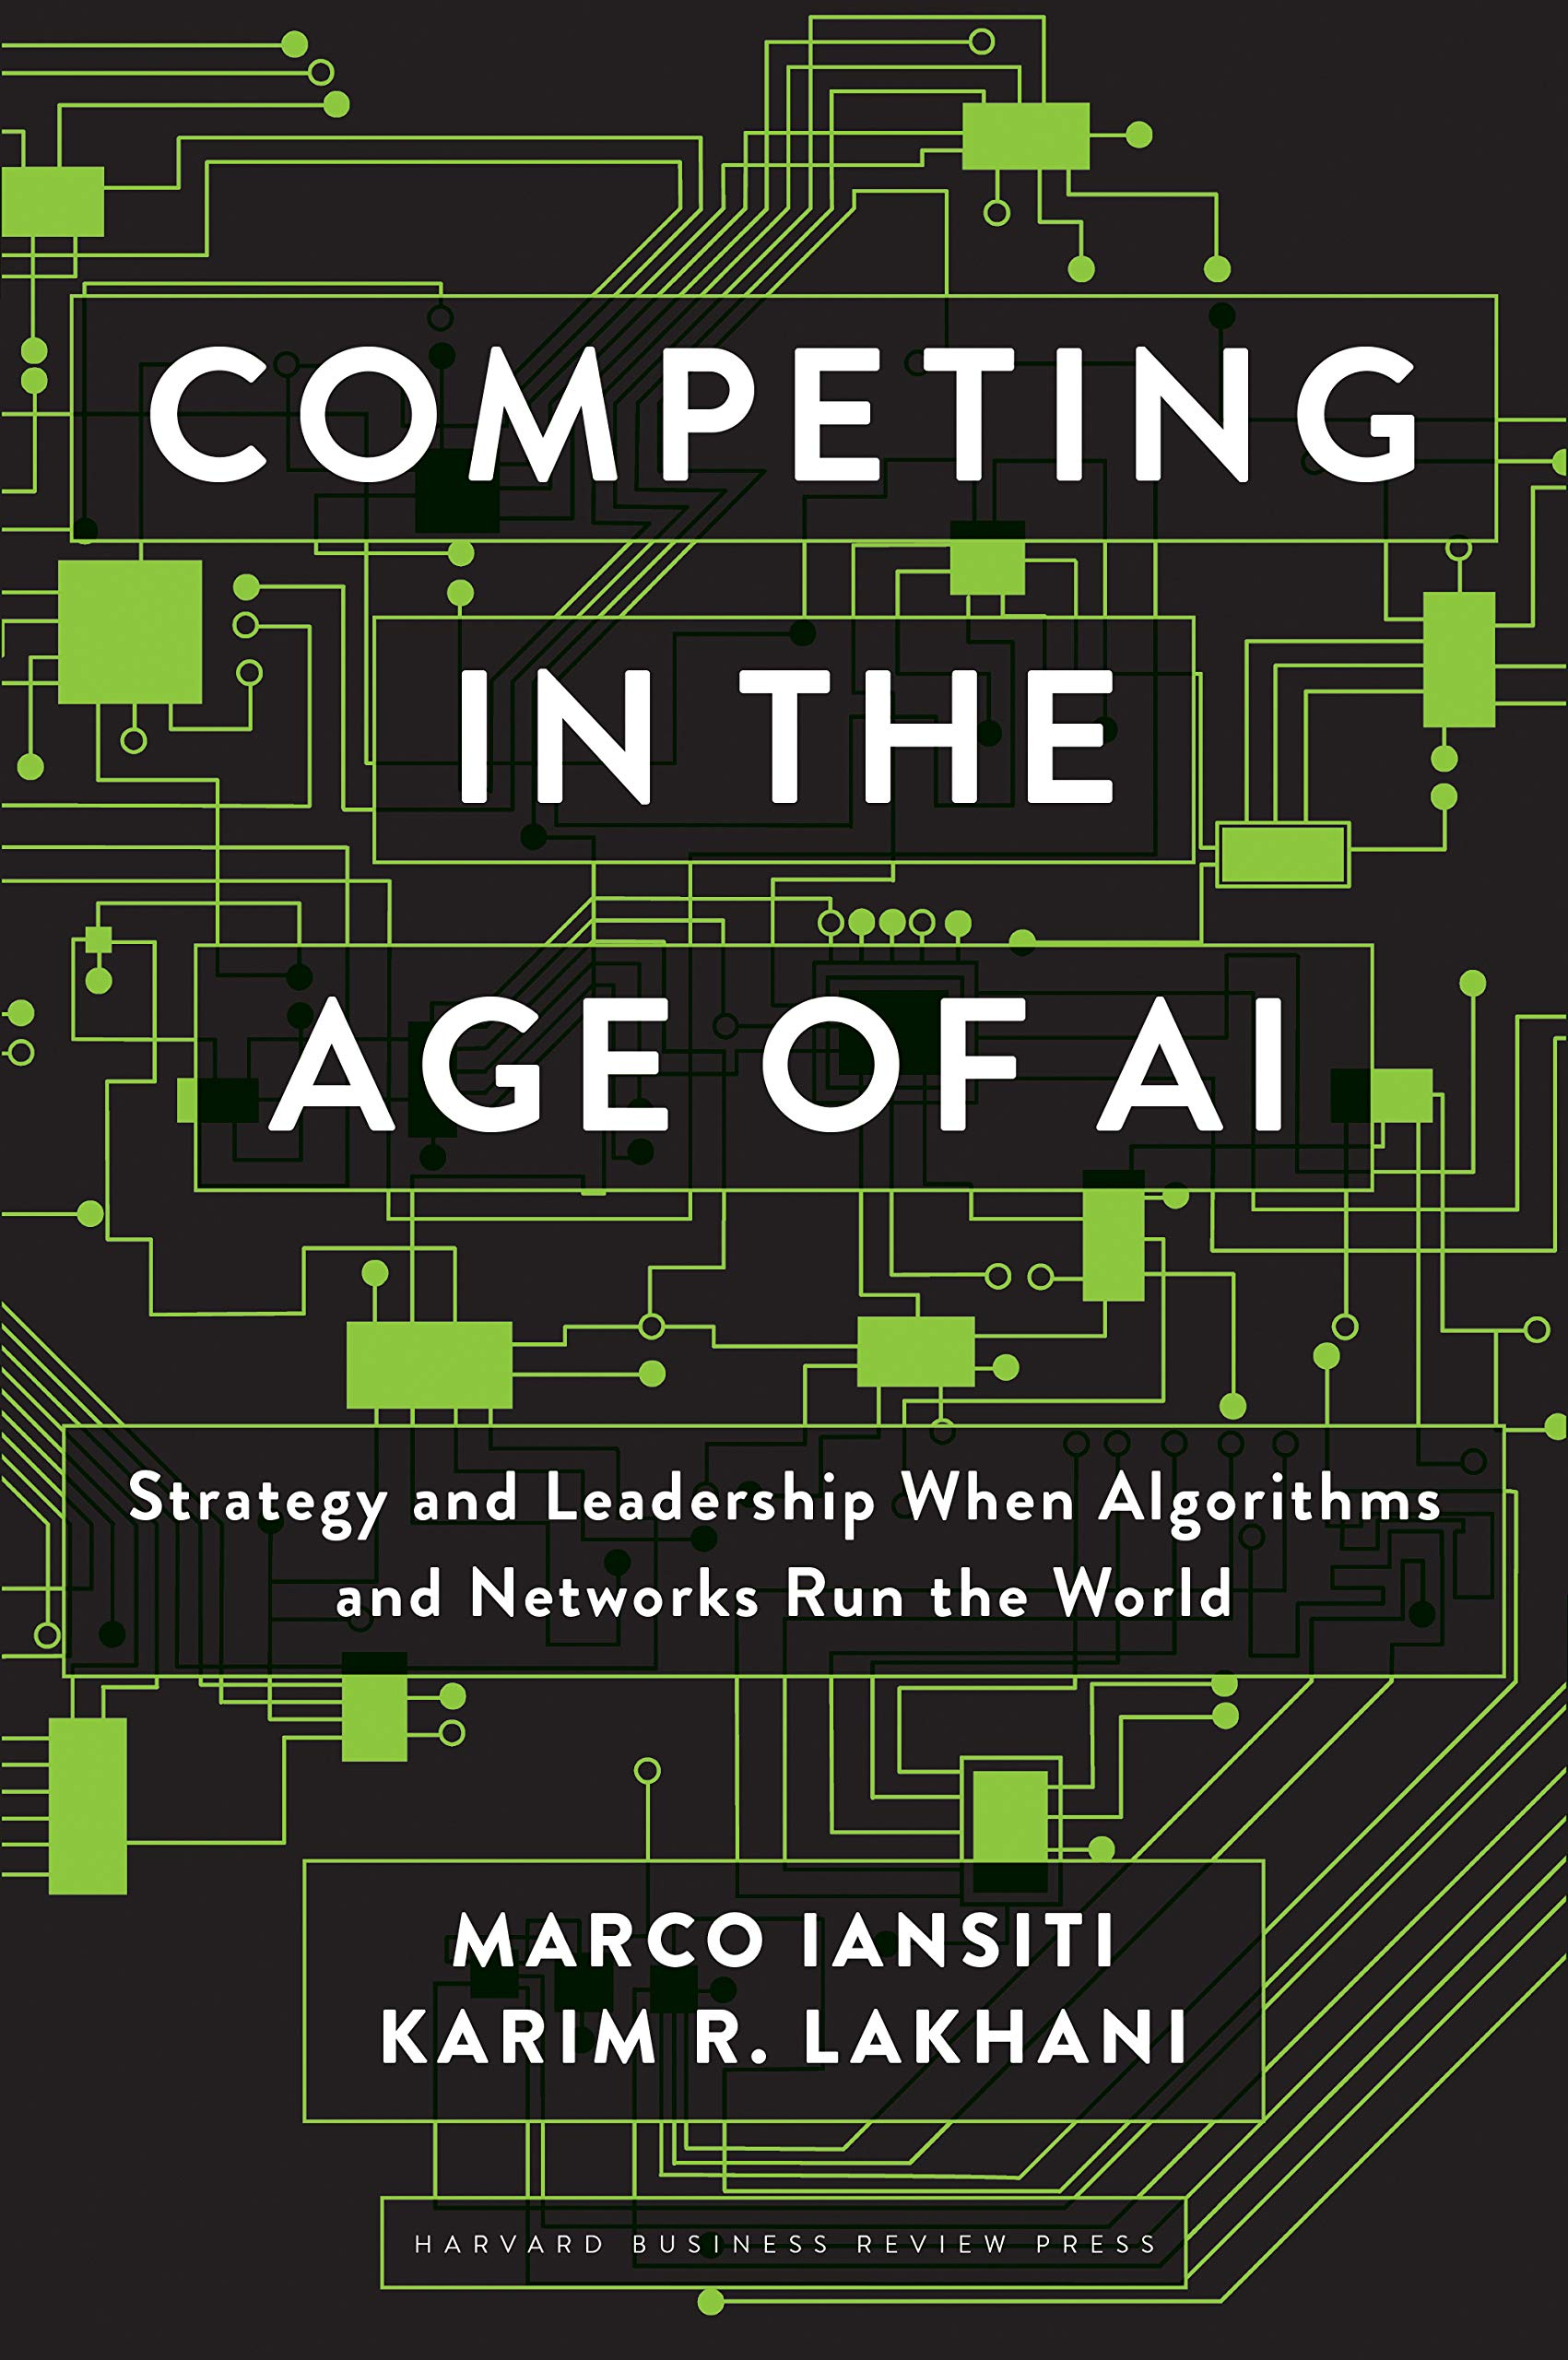 Download Competing in the Age of AI: Strategy and Leadership When Algorithms and Networks Run the World (English Edition)